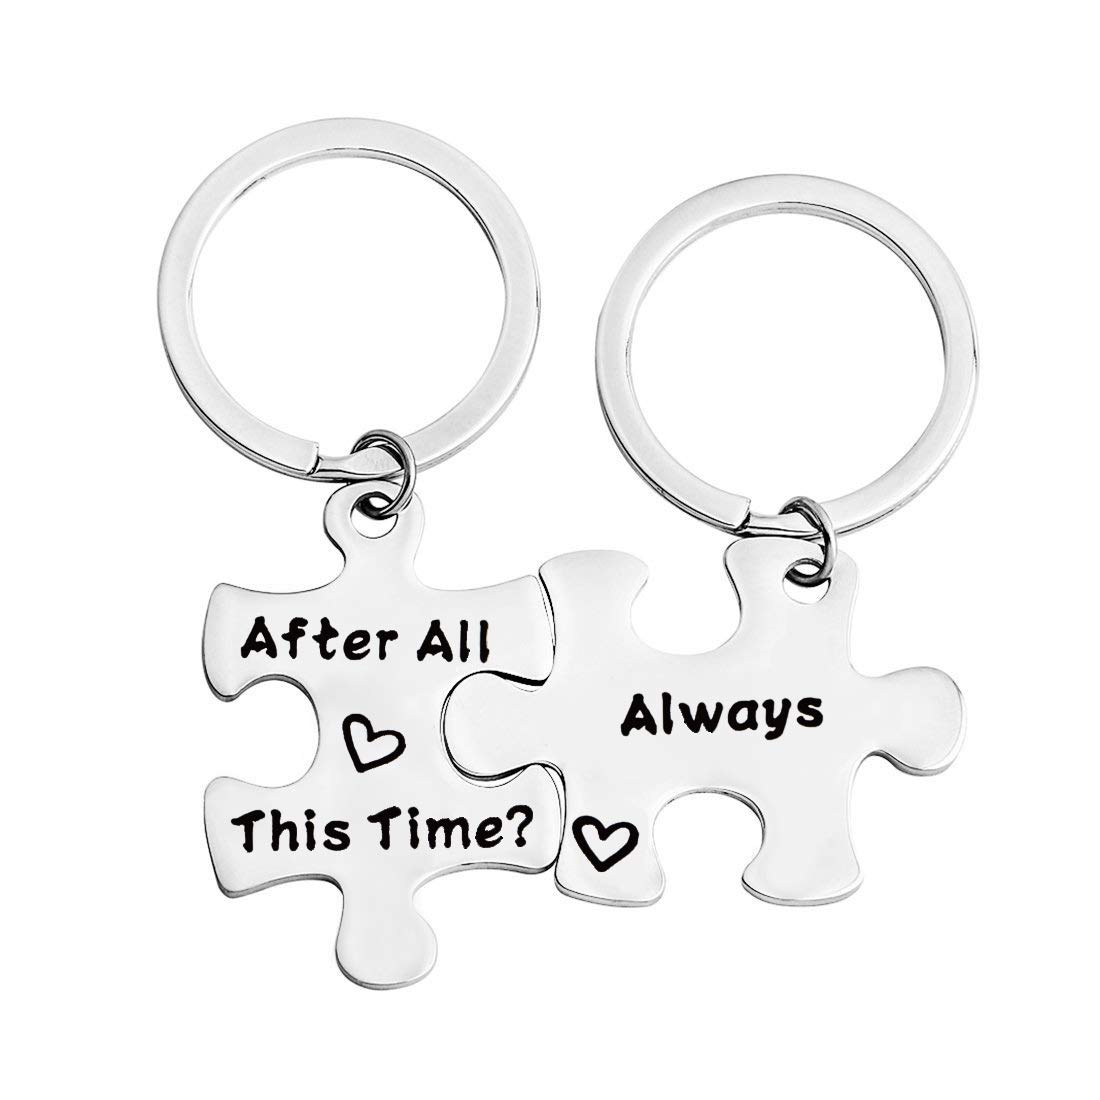 FEELMEM After All This Time Always Couples Puzzle Keychain Set Wedding Valentine's Gift Long Distance Keychain Friendship Gift (Silver)